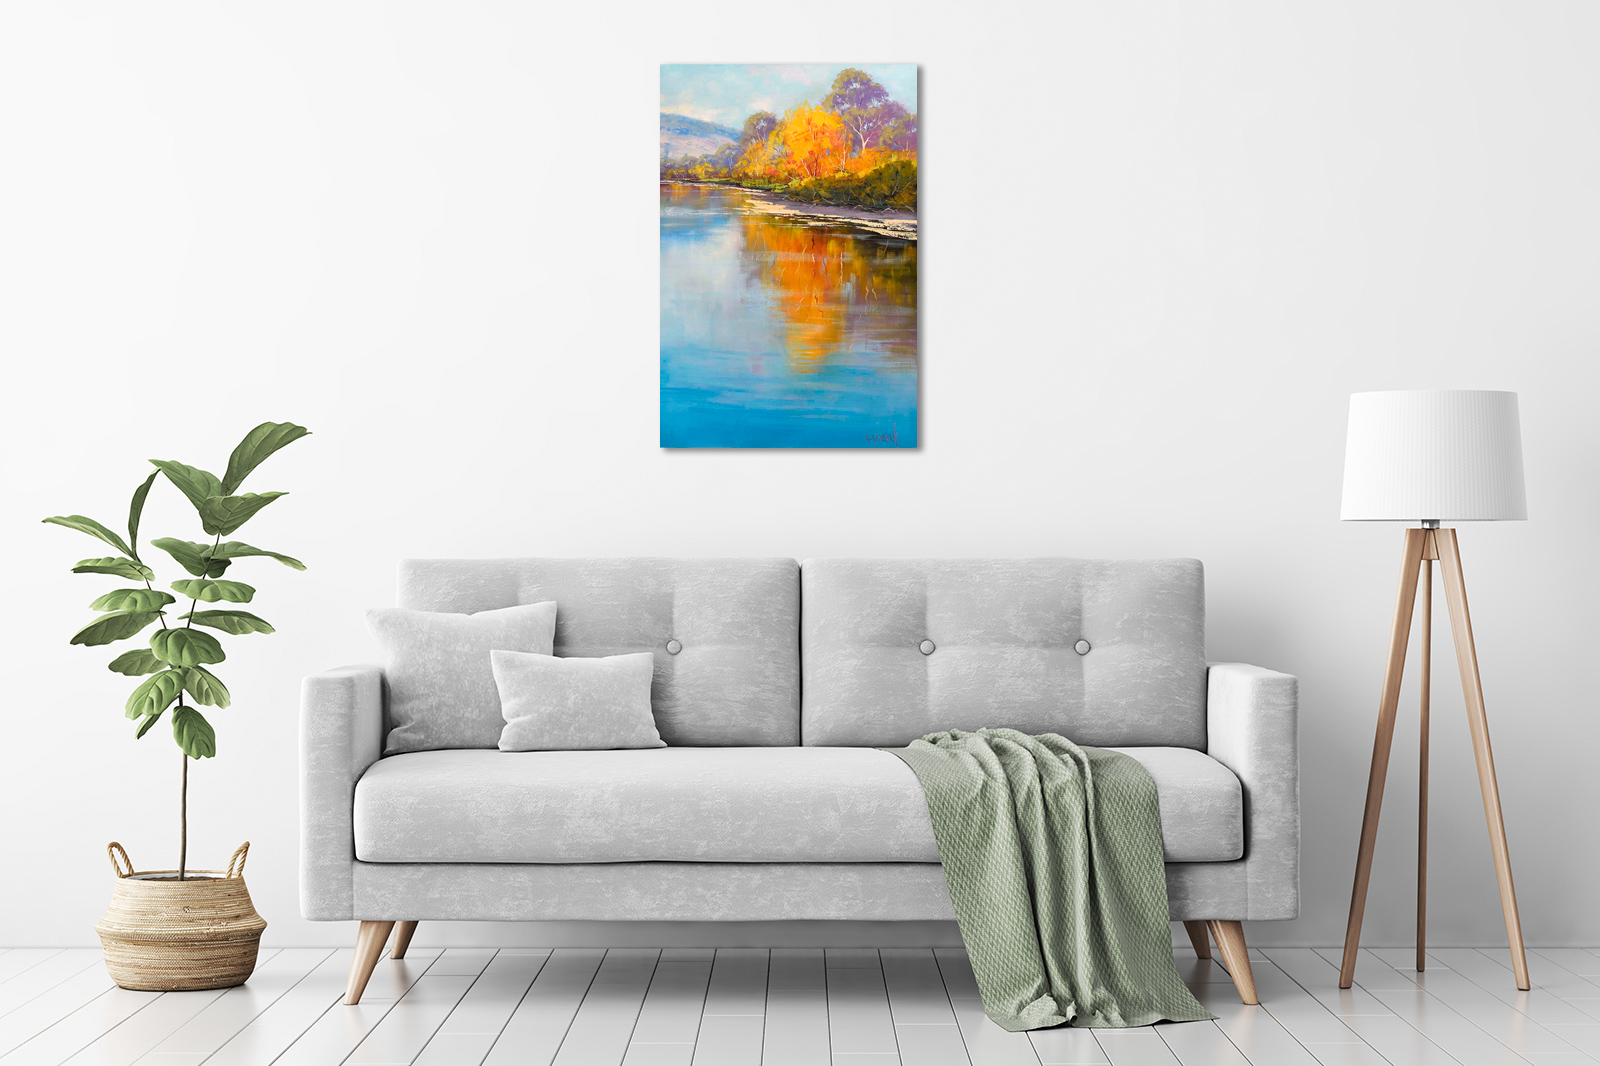 Autumn Colours, Tumut River in a room